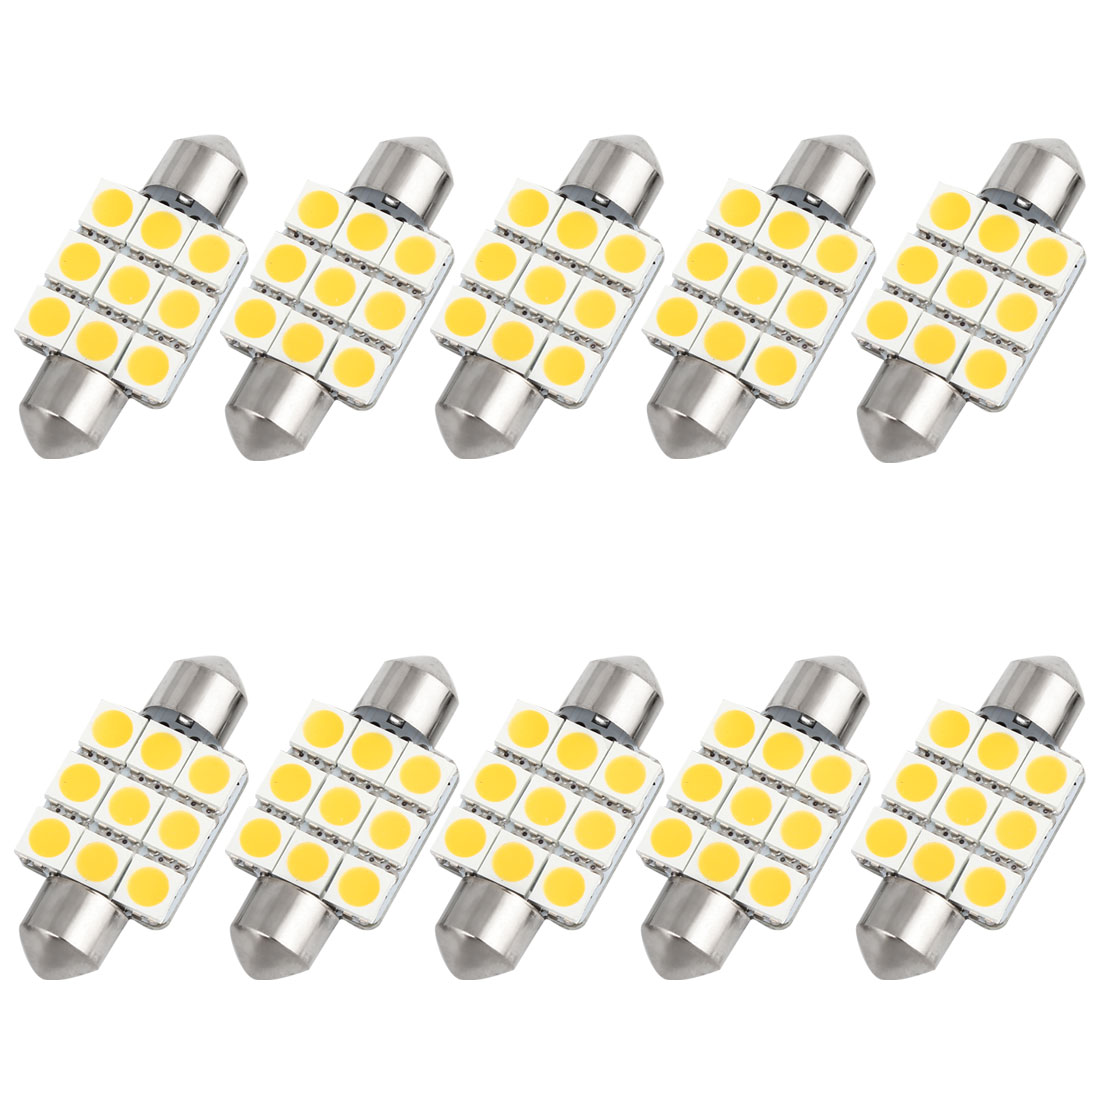 10pcs 36mm Warm White 9 LED 5050 SMD Festoon Dome Light Lamp DC 12V 6418 6413 Internal